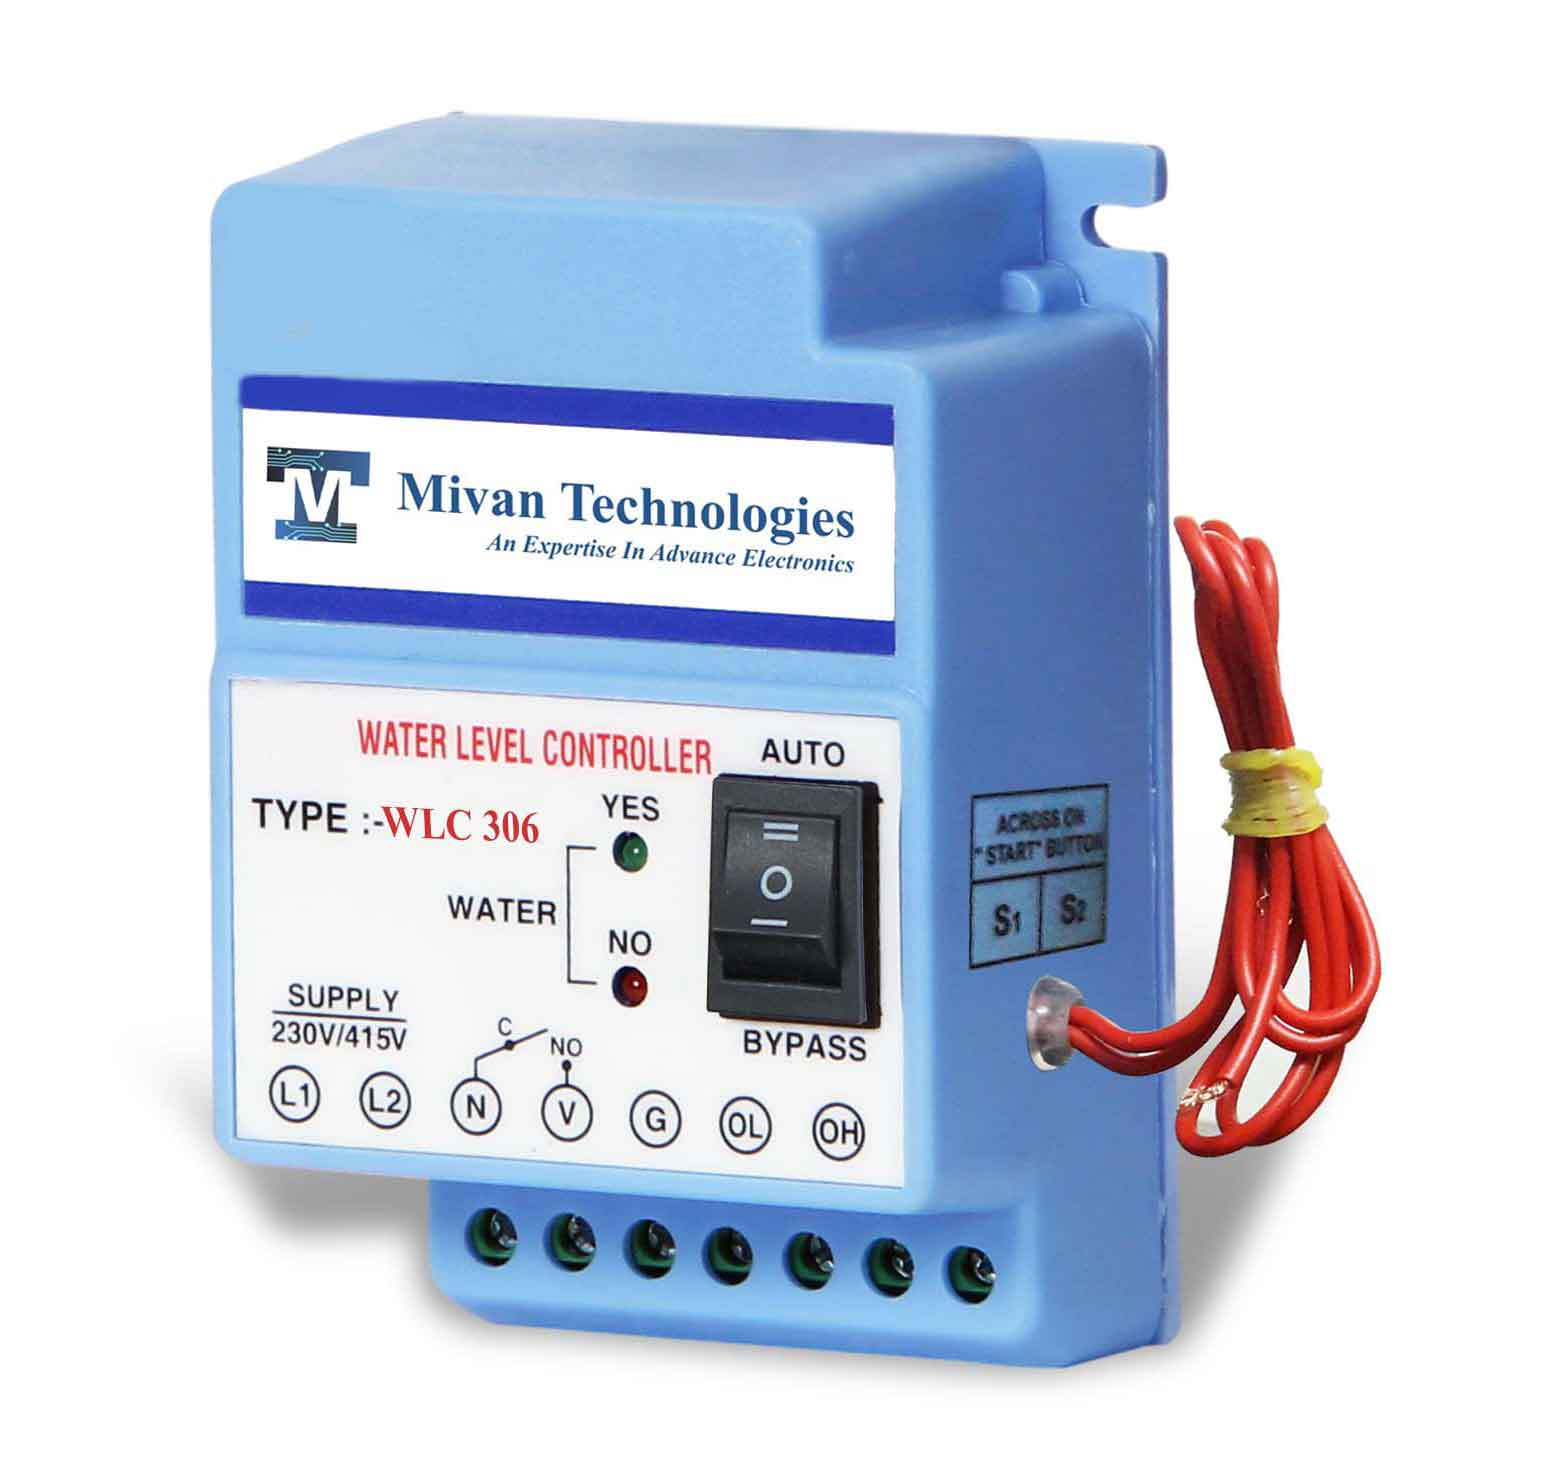 Wlc 306 Water Level Controller For 3 Phase Motor With Sensor Circuit Indicator Http Assets Img